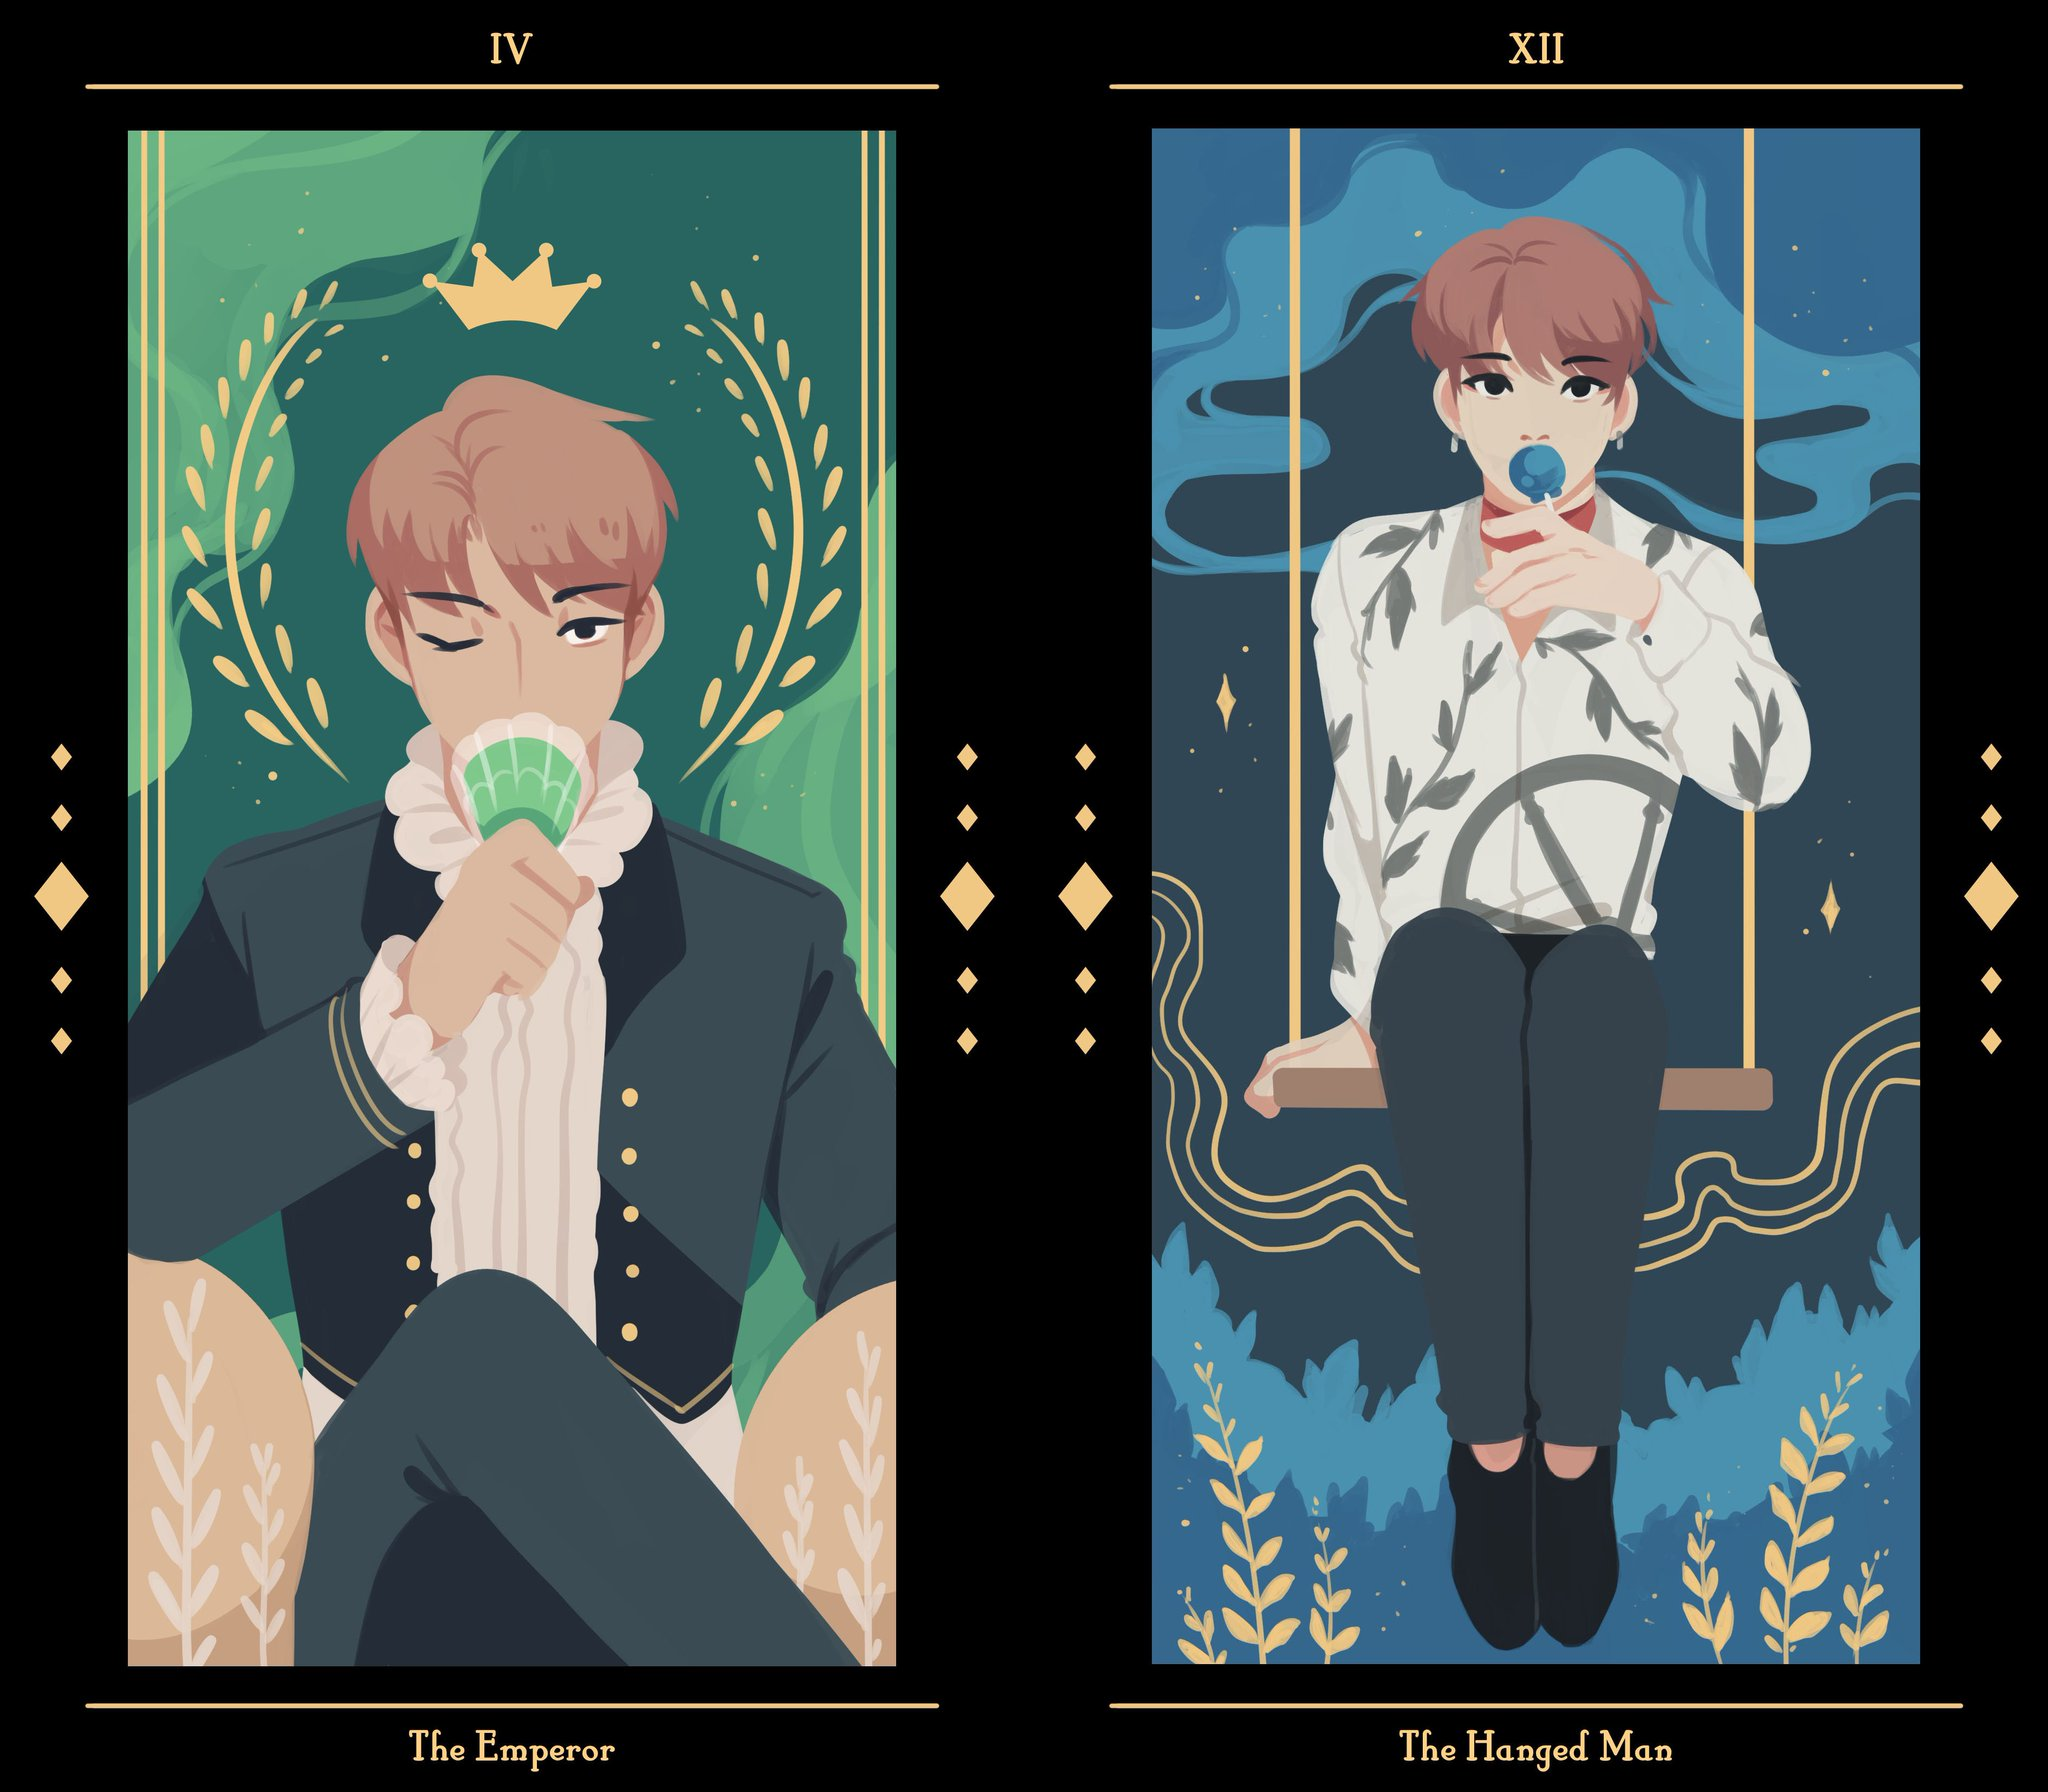 Cute Bts Drawings Wallpaper Ray On Twitter Quot 피 땀 눈물 Tarot Set Do Not Edit Repost